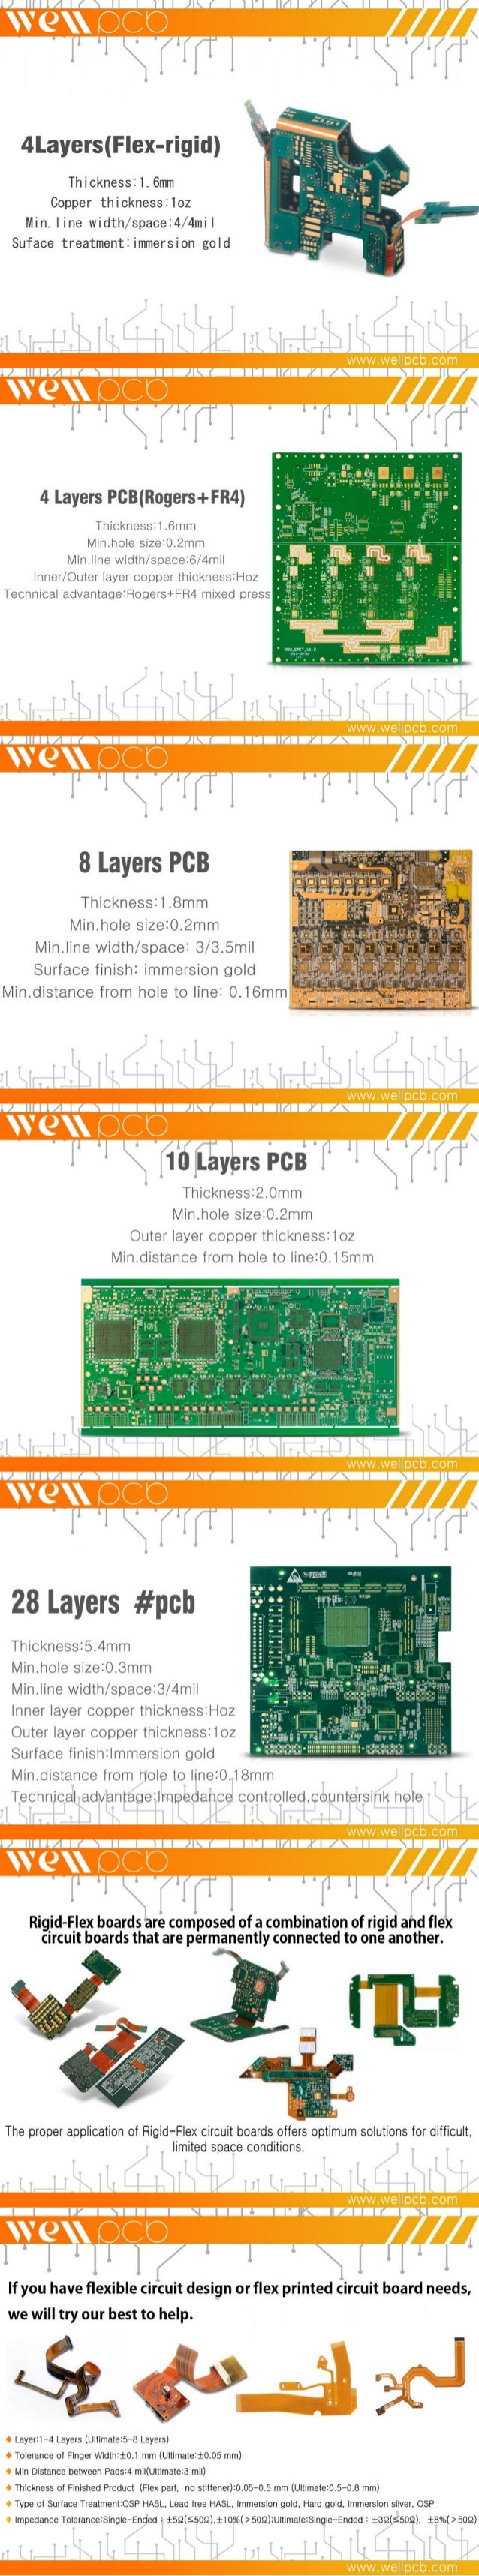 PCB Products Display